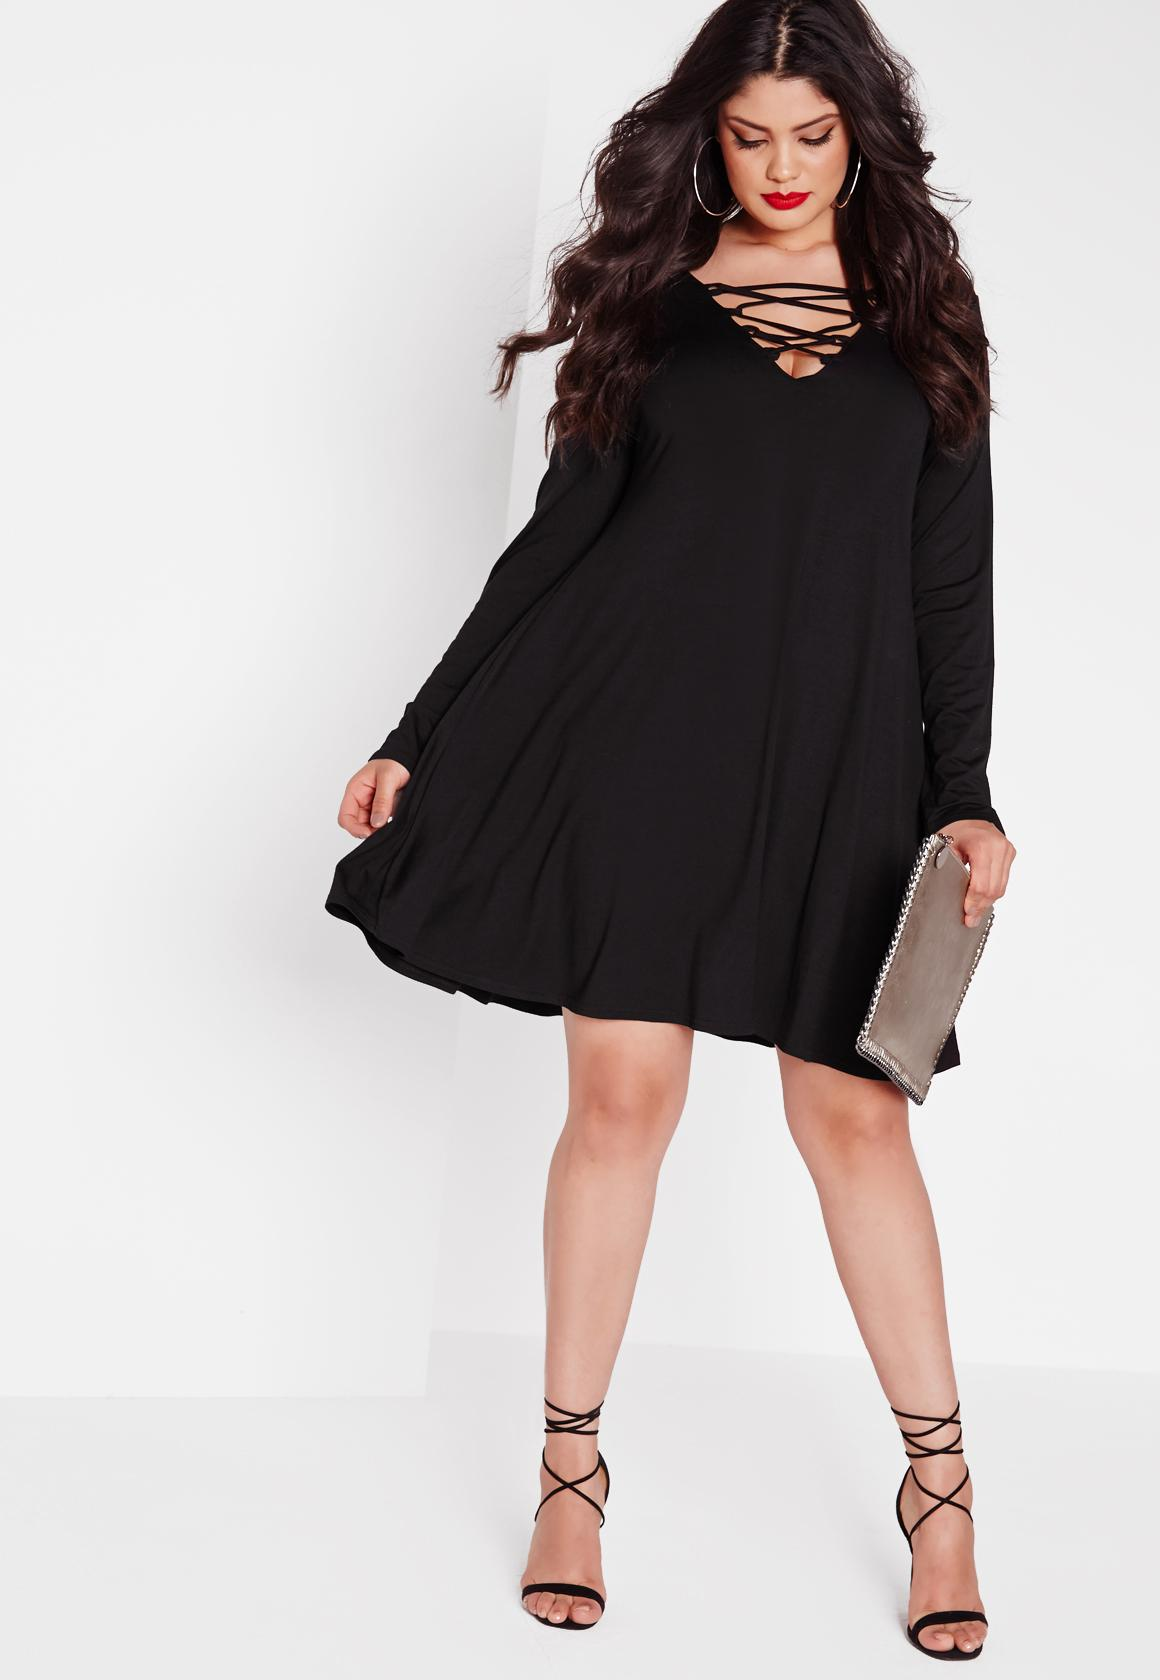 Plus Size Dresses – Fashion dresses